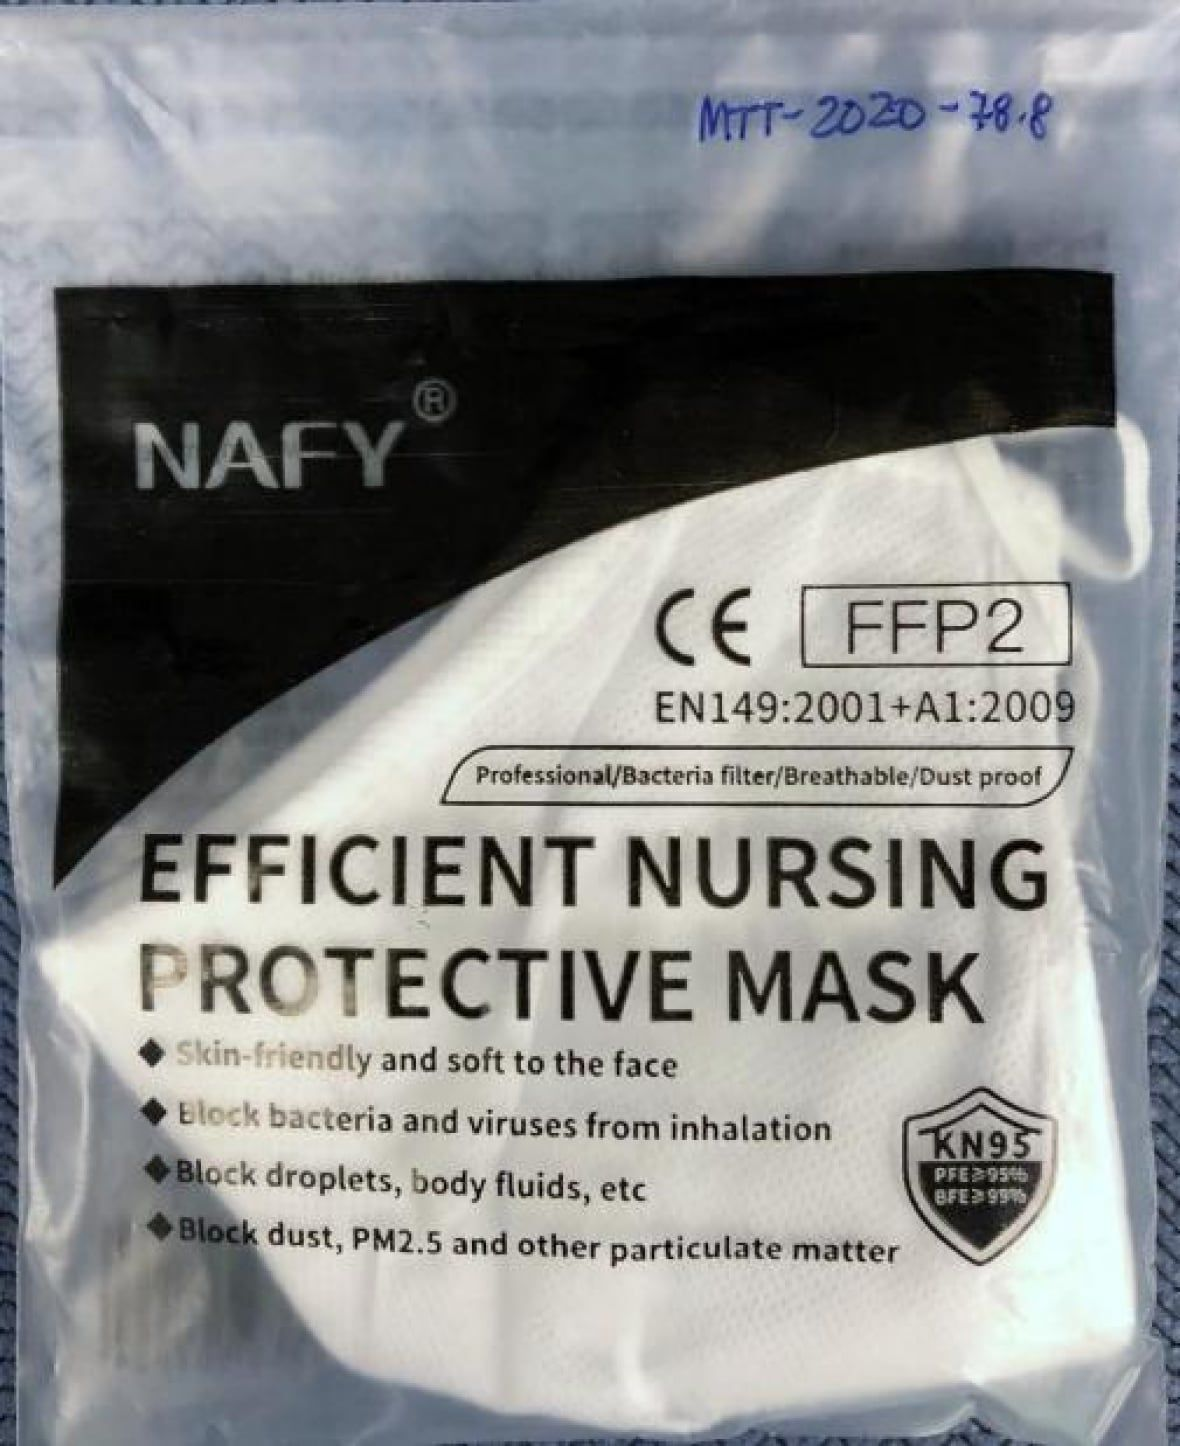 Health Canada issues recall of some KN95 masks made in